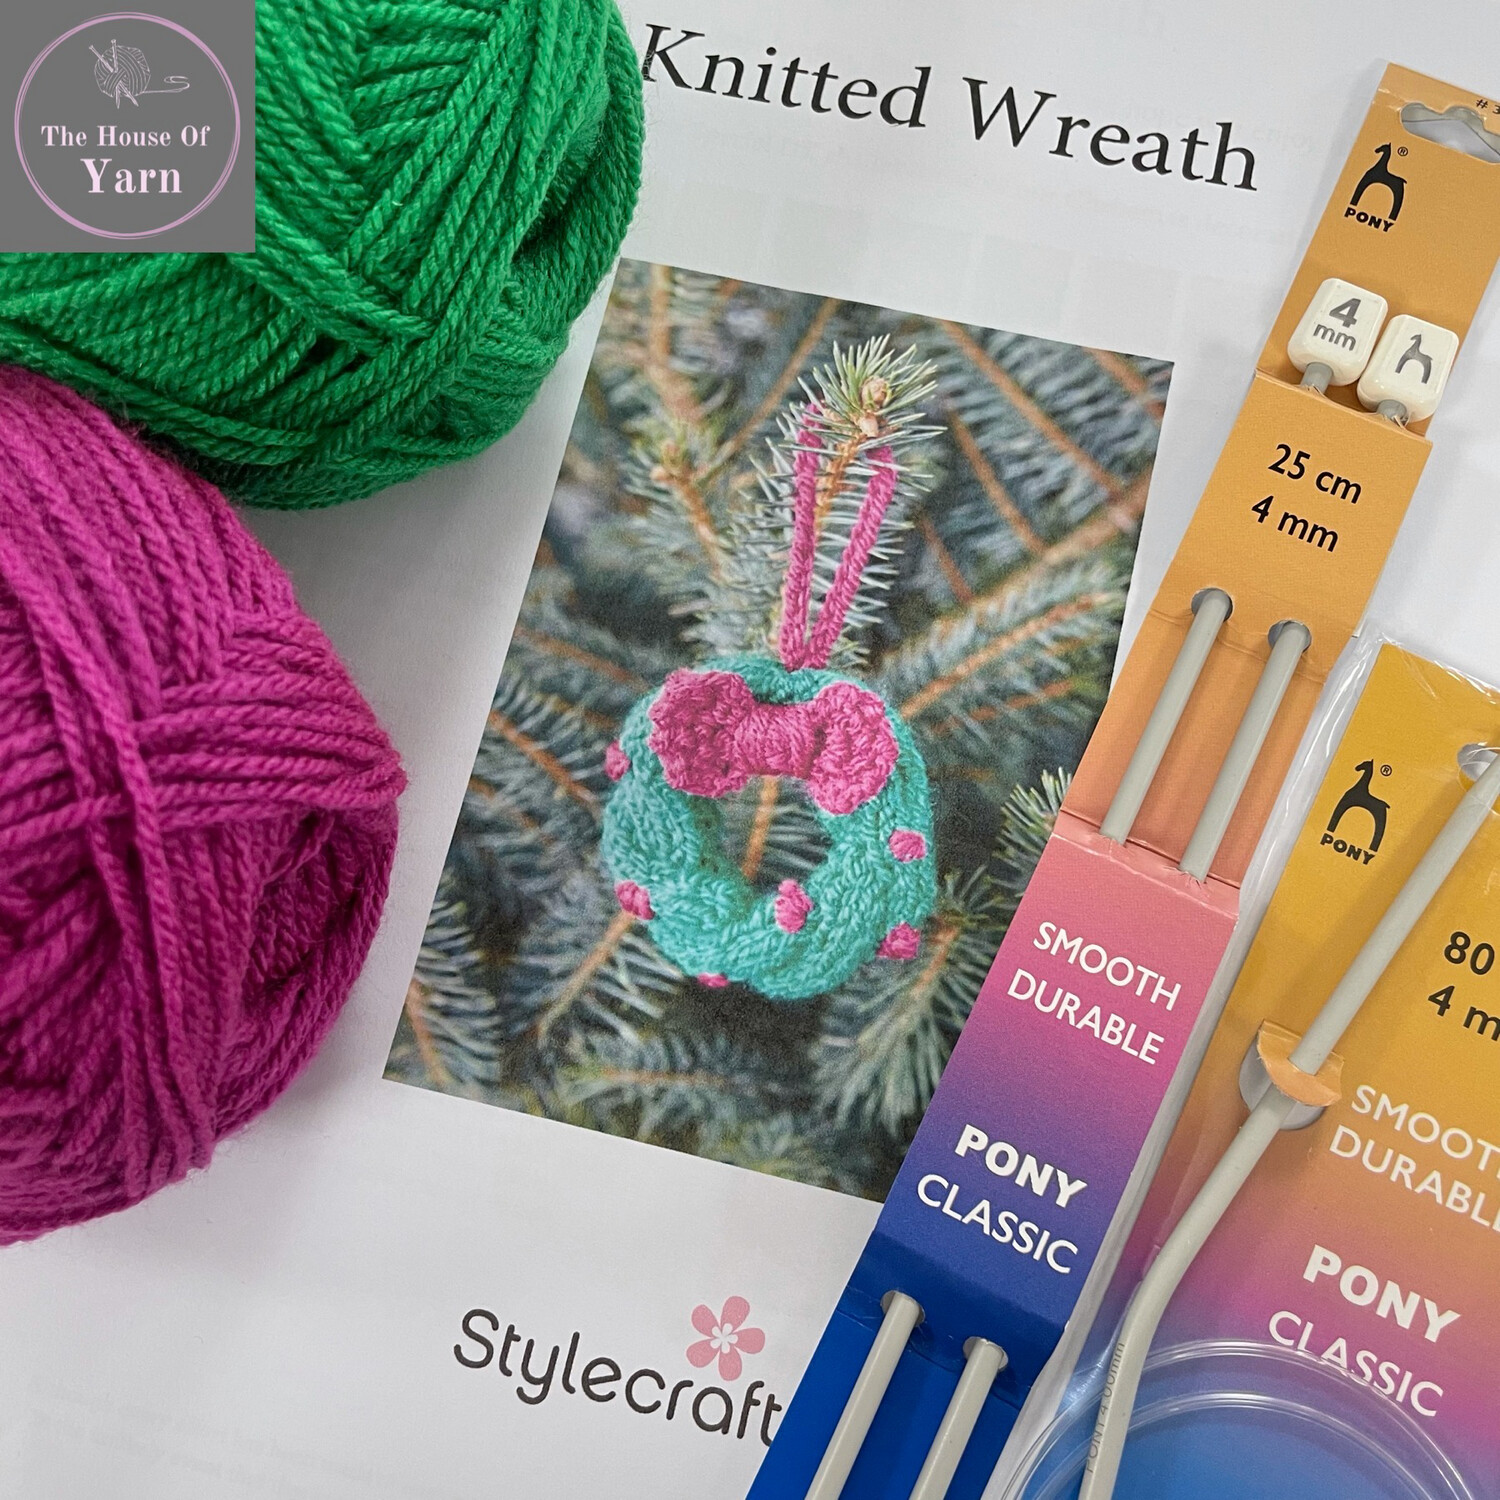 Stylecraft Christmas Wreath Decoration Complete Knitting Kit including all required yarn and knitting accessories PLUS FREE PATTERN